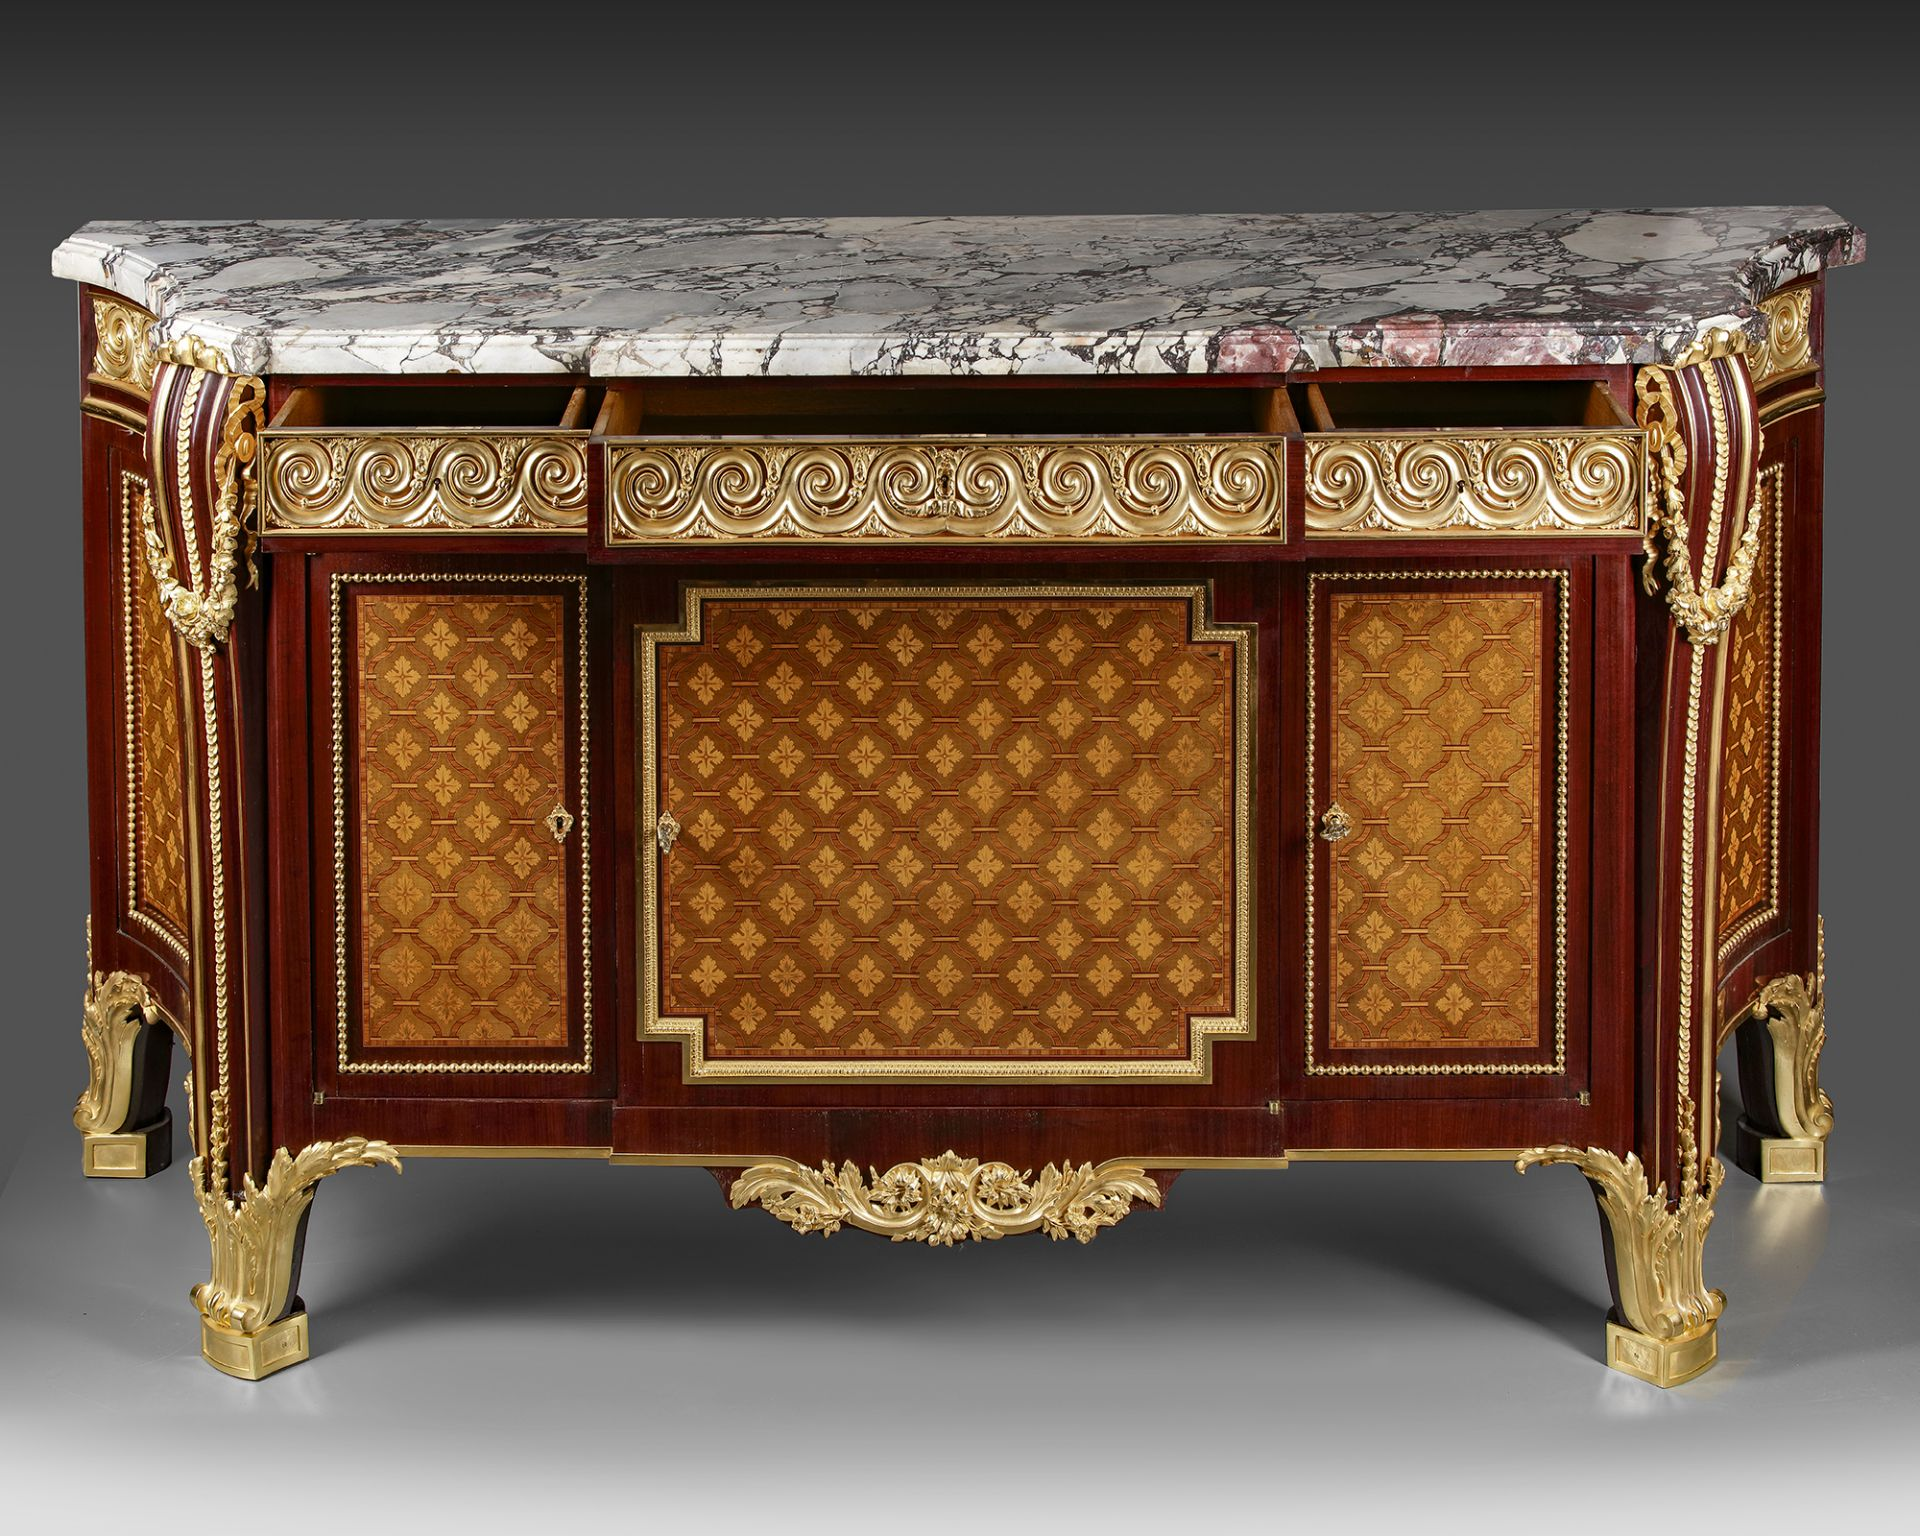 A FRENCH CABINET, L GUENIÈRES JEUNE, LATE 19TH CENTURY - Image 5 of 8